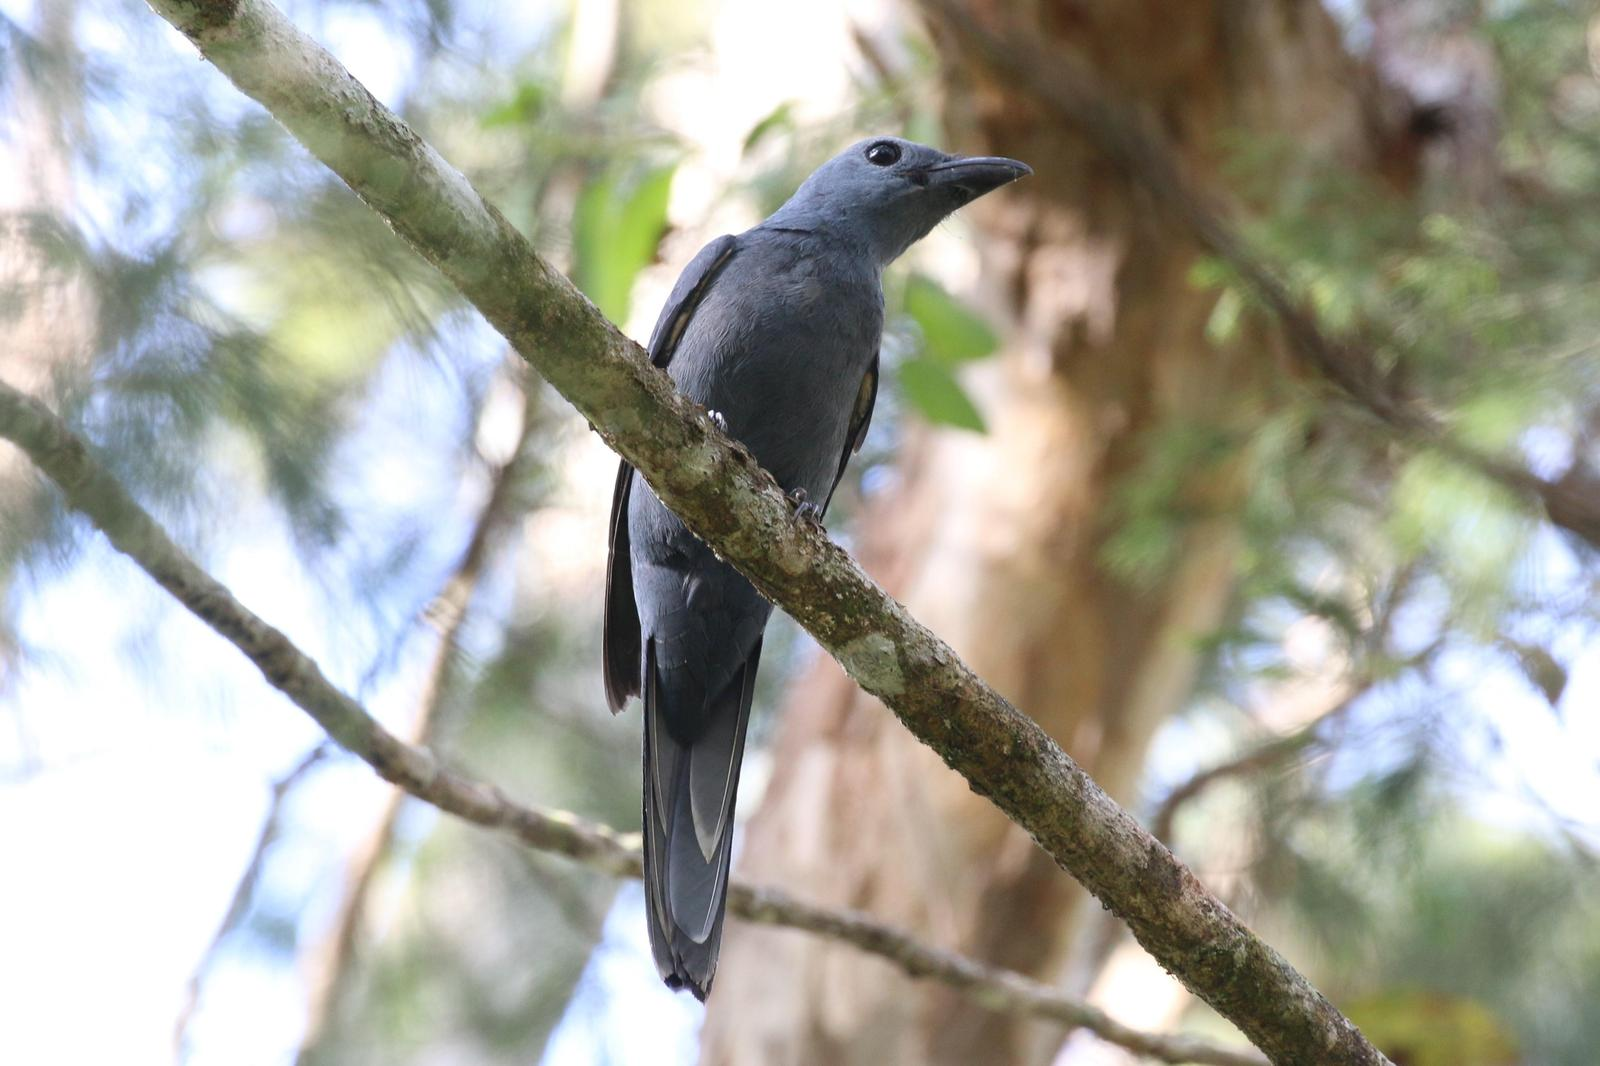 Stout-billed Cuckooshrike Photo by Richard Jeffers